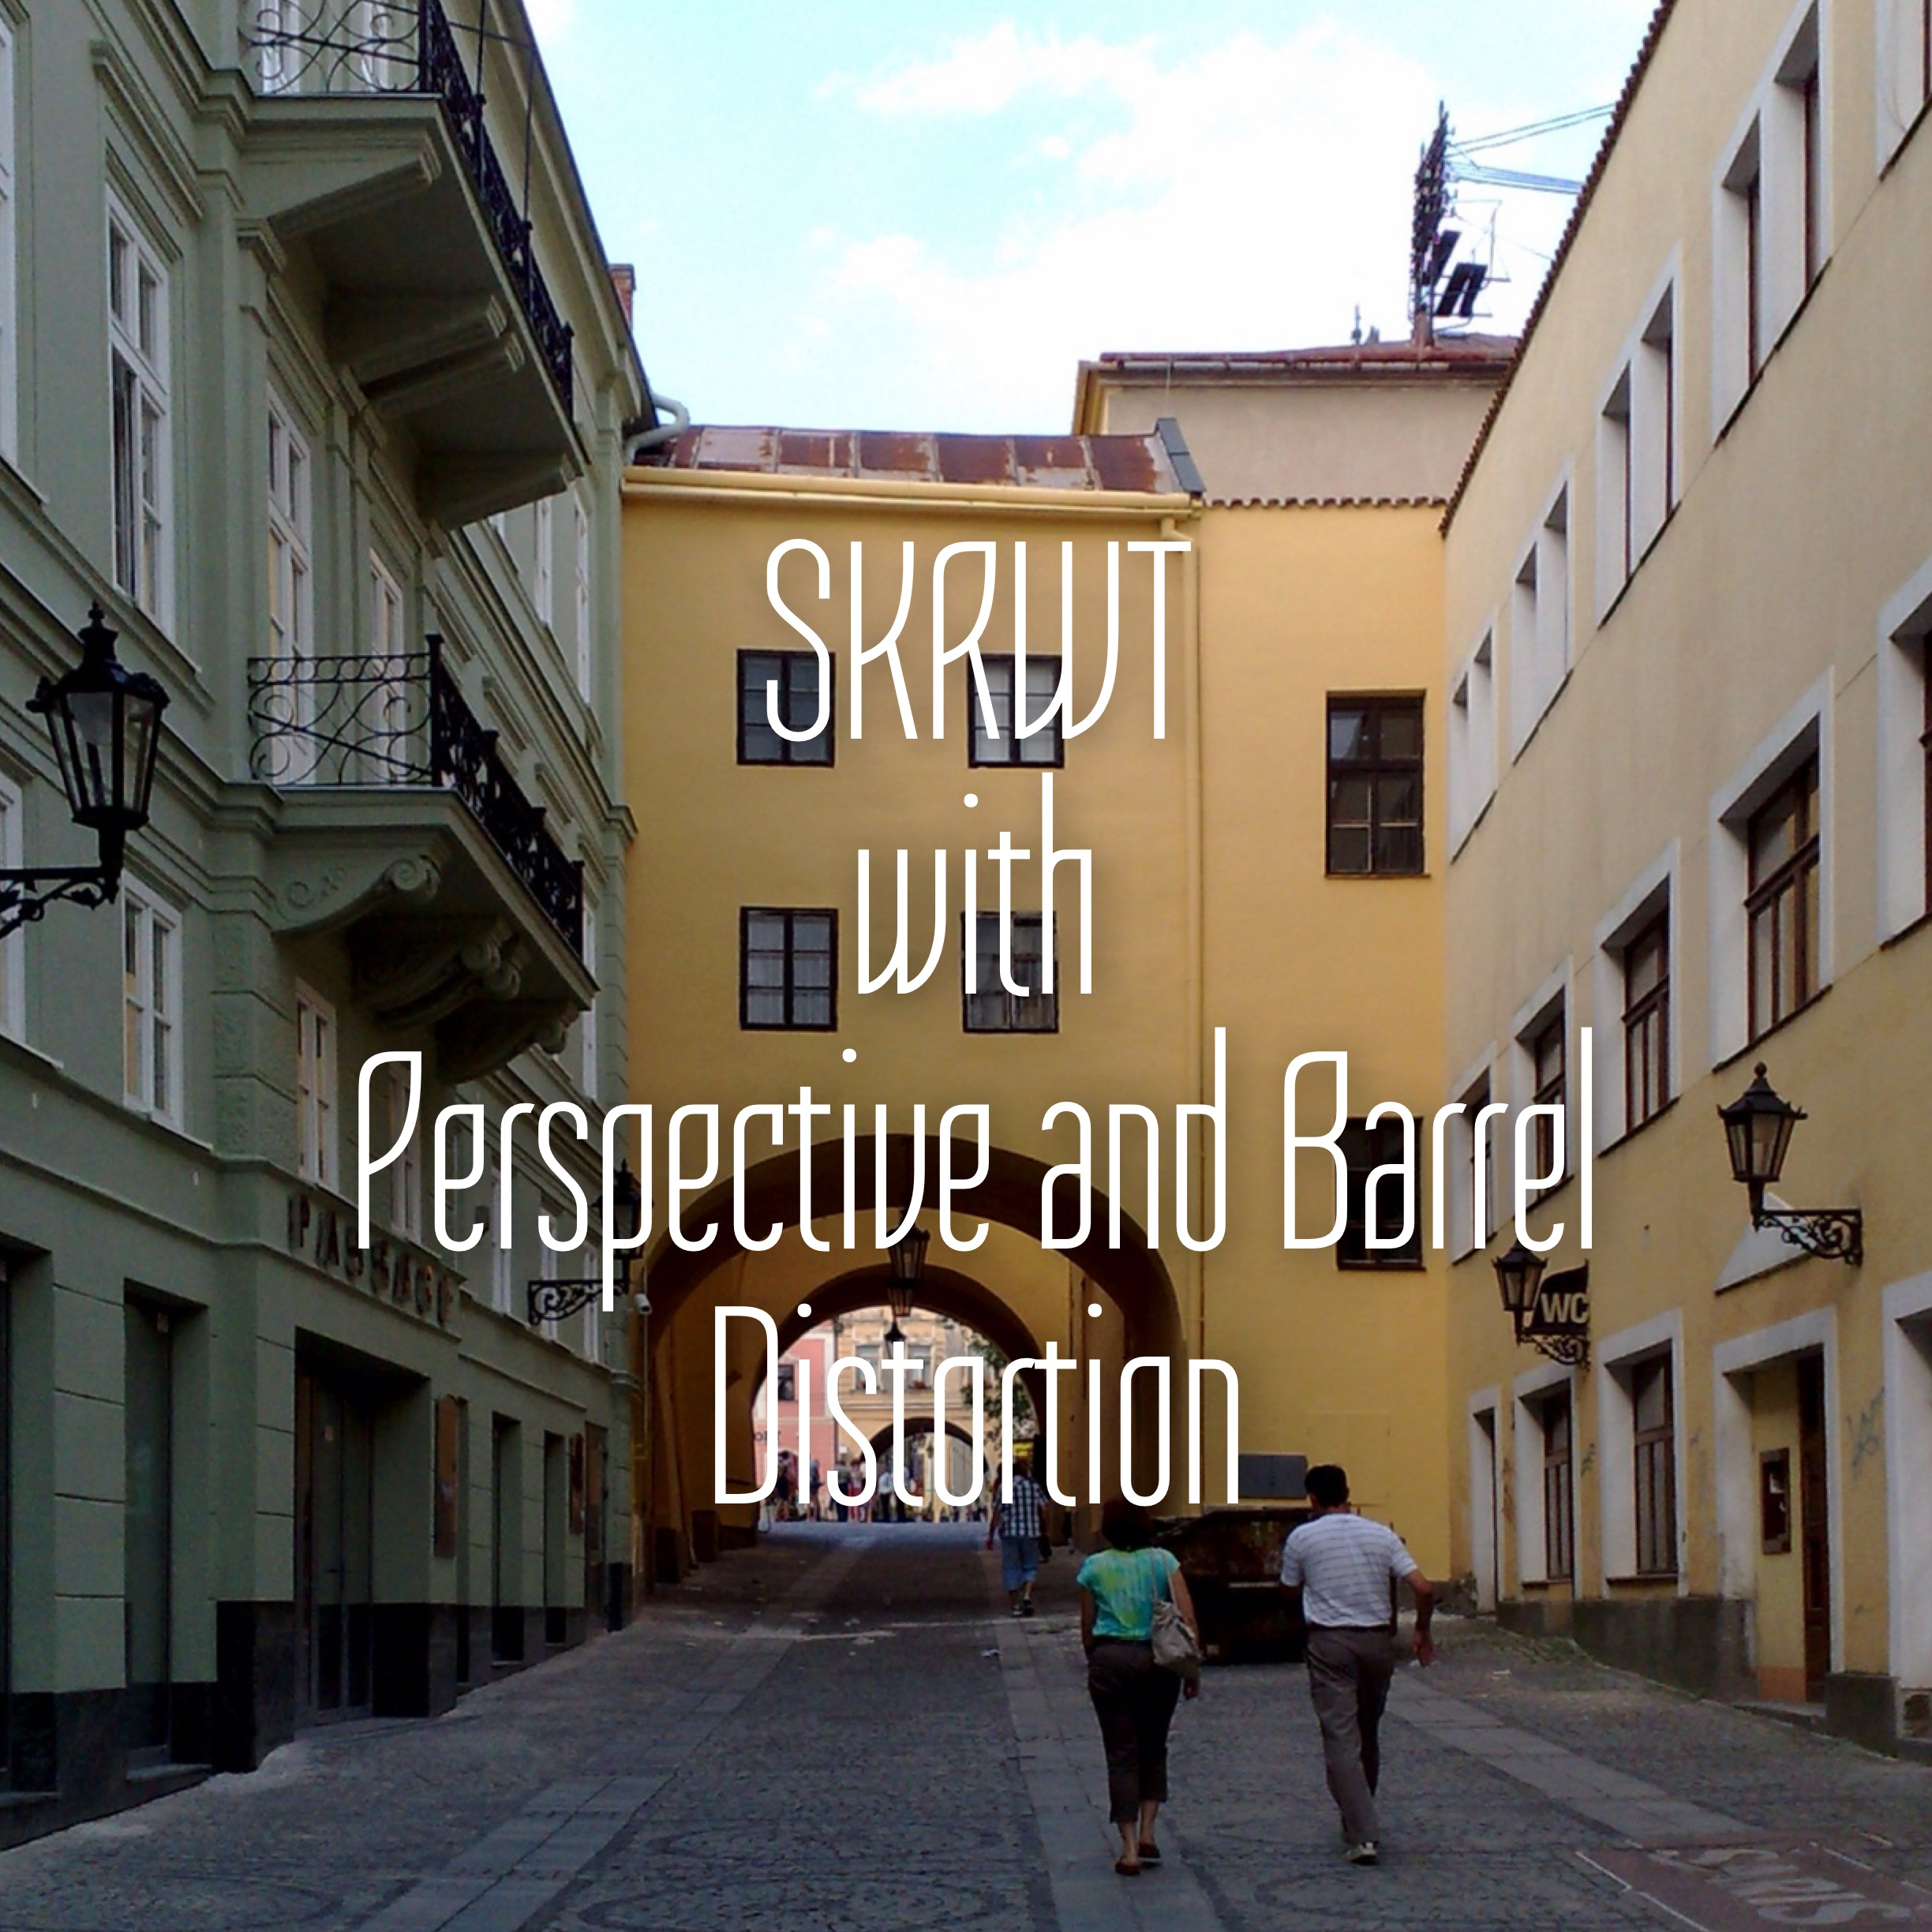 SKRWT With Perspective and Barrel Distortion - Moblivious